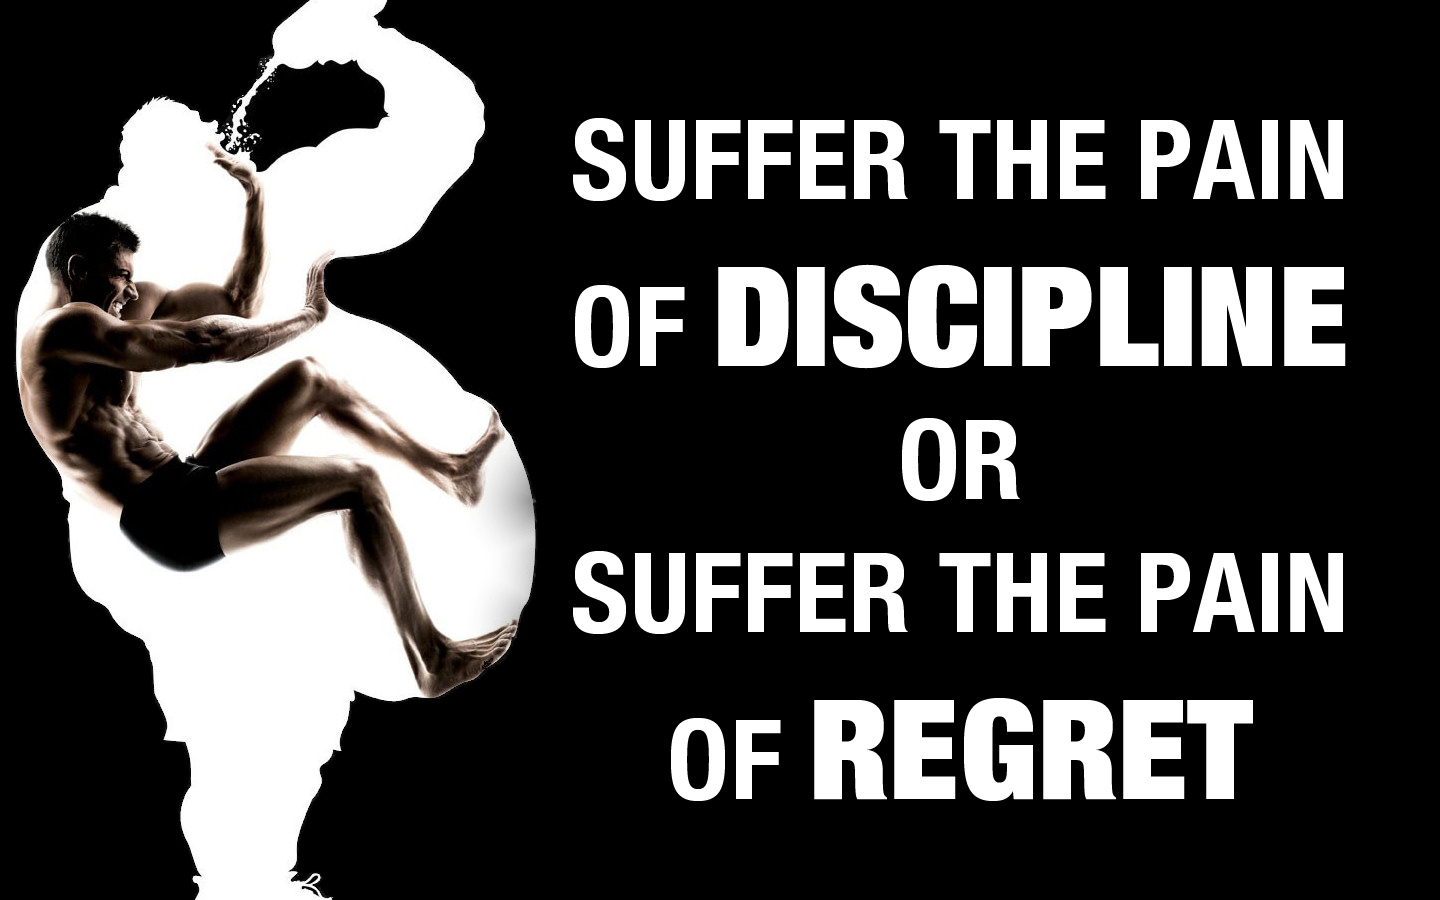 Fitness Motivational Quotes 3. 27 May 2014 ...